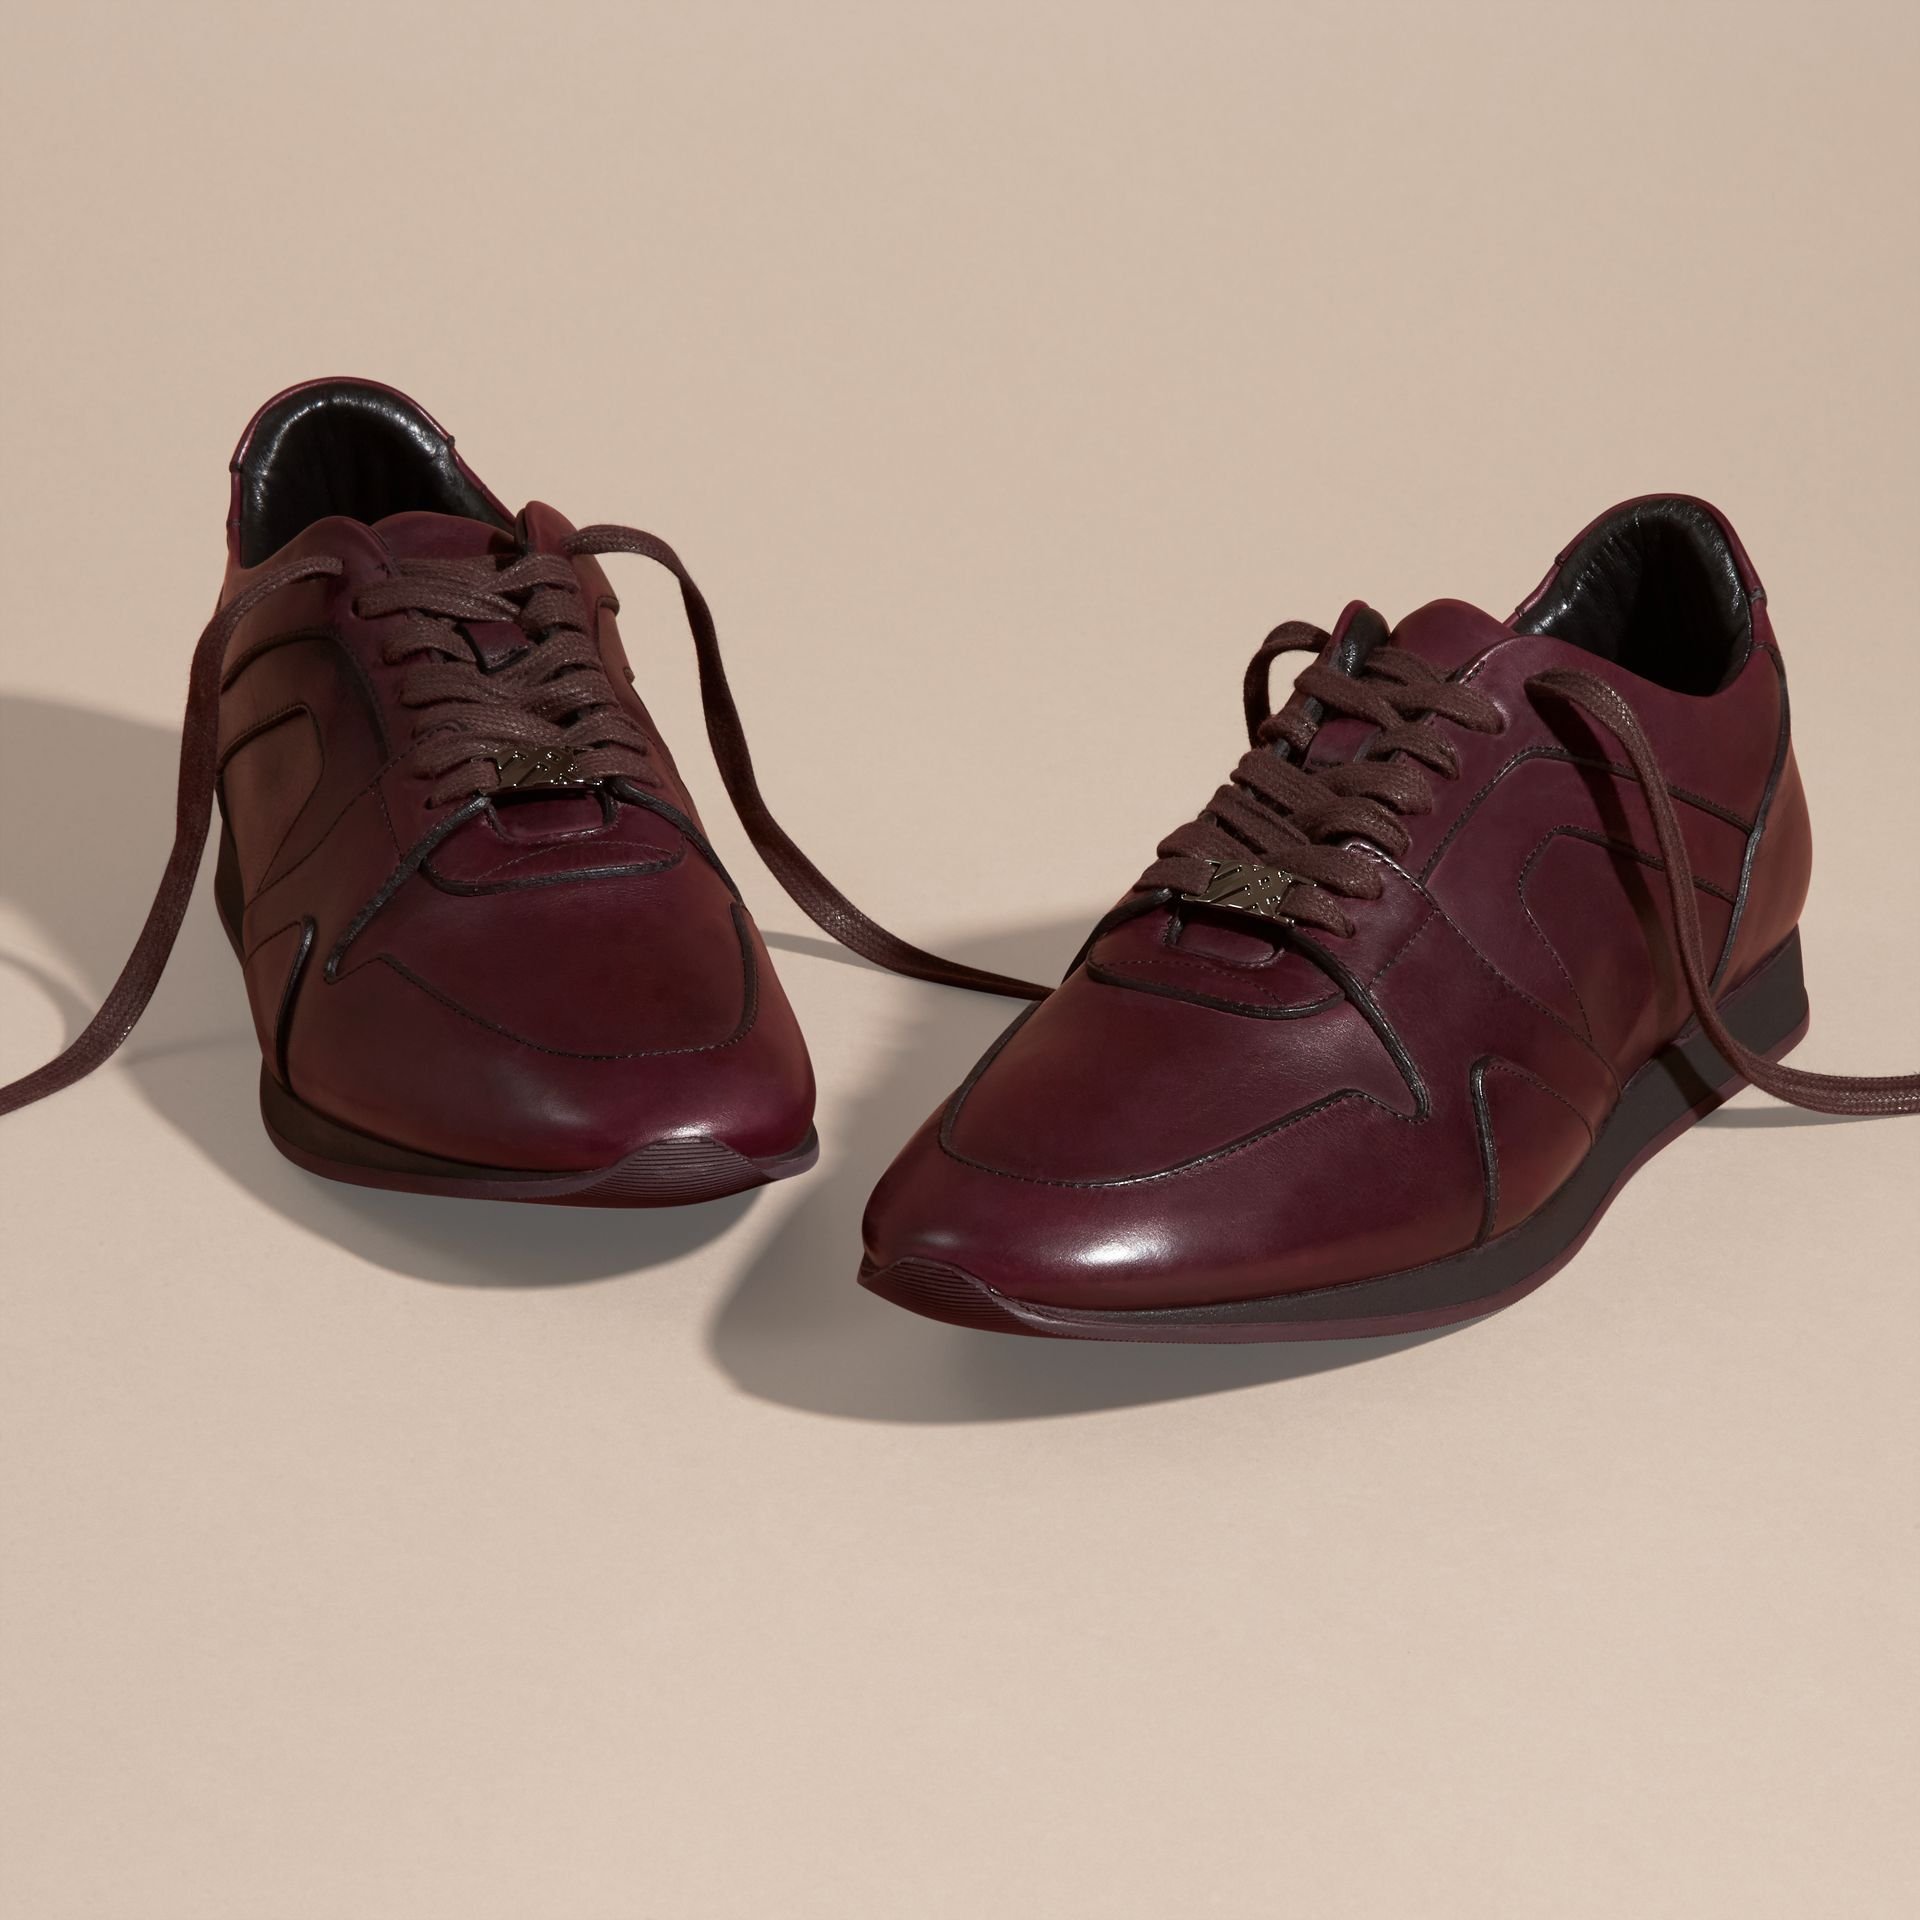 Elderberry The Field Sneaker in Leather Elderberry - gallery image 3